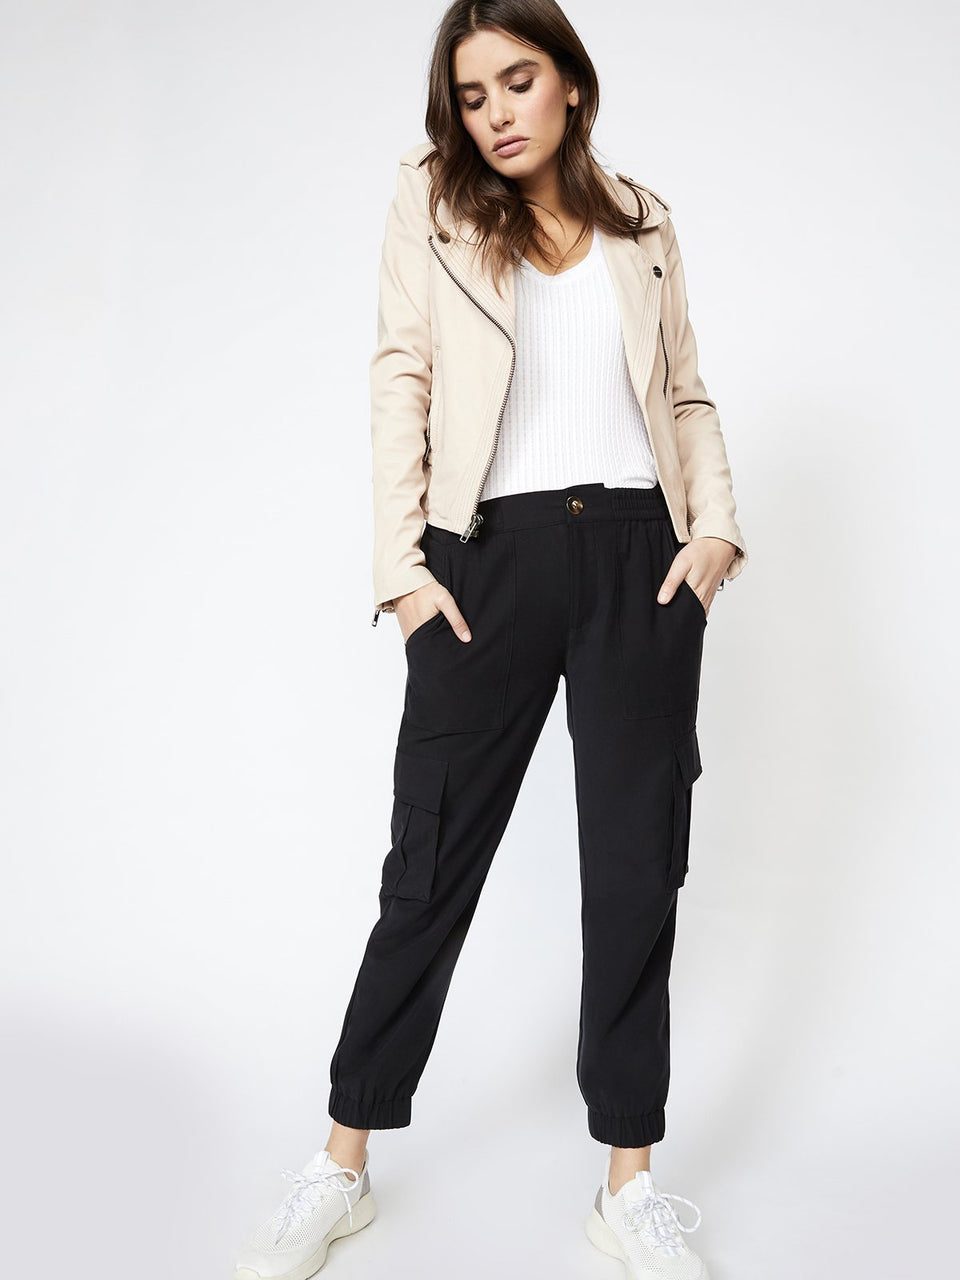 The Harmony Pant - Black